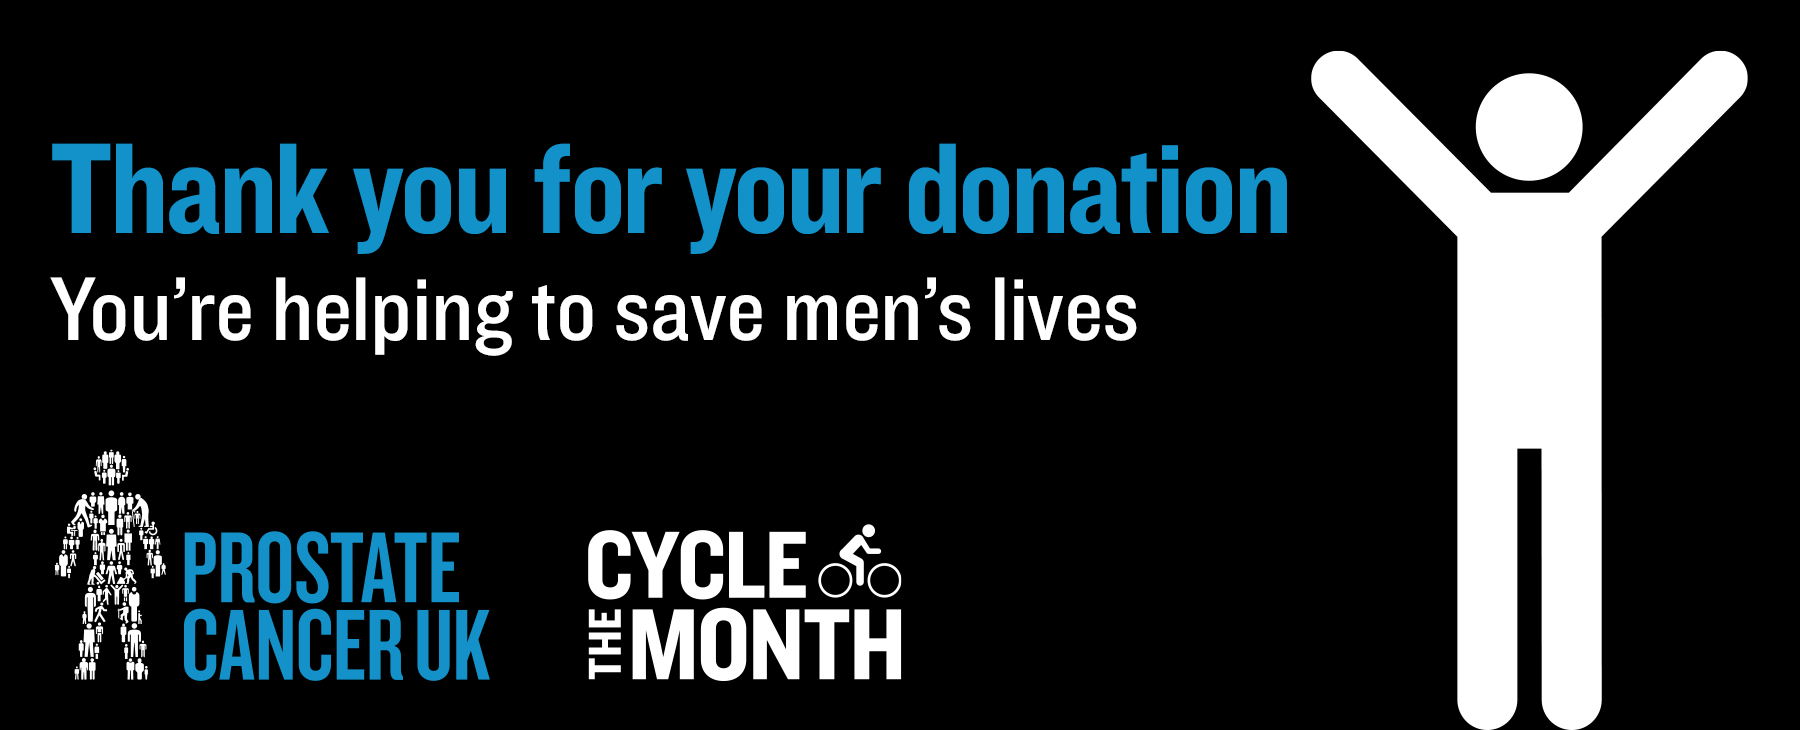 Prostate Cancer Uk - Thank you for your donation.  You're helping us save men's lives.